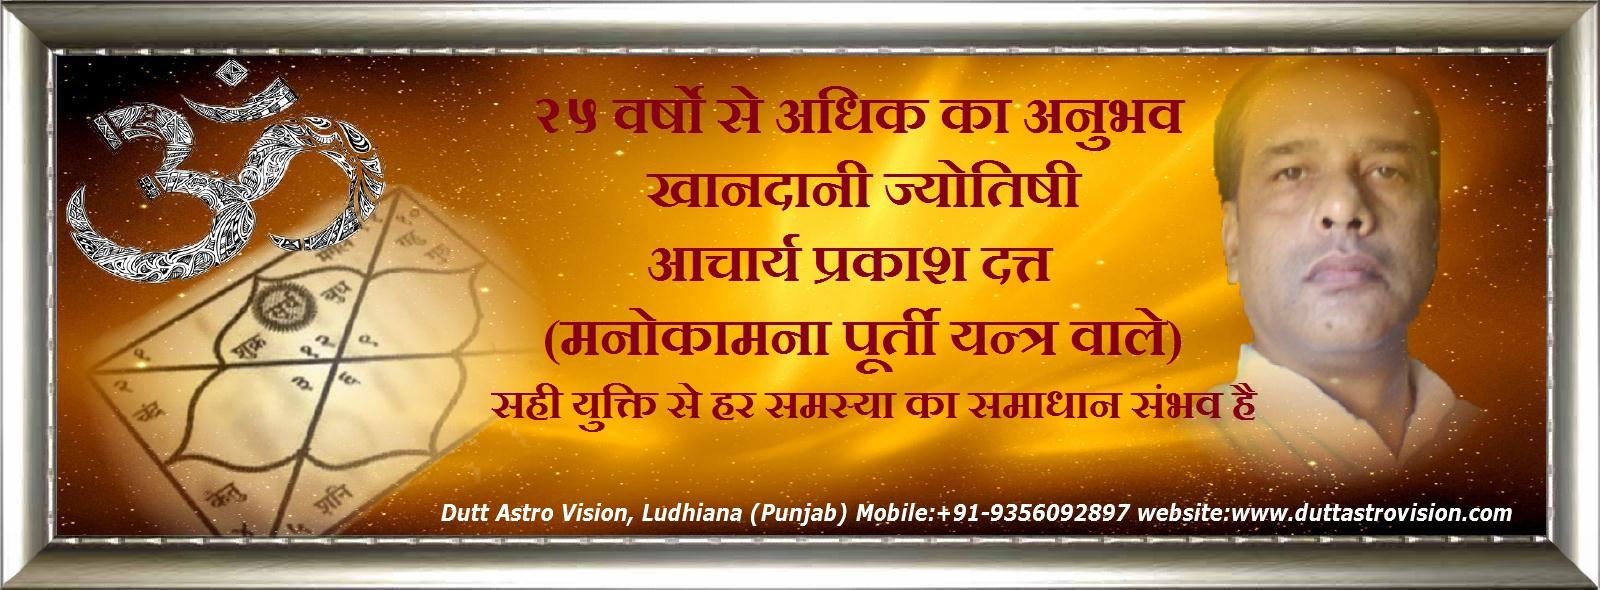 Astrologer Parkash Dutt in  Ludhiana having more than 25 years experience